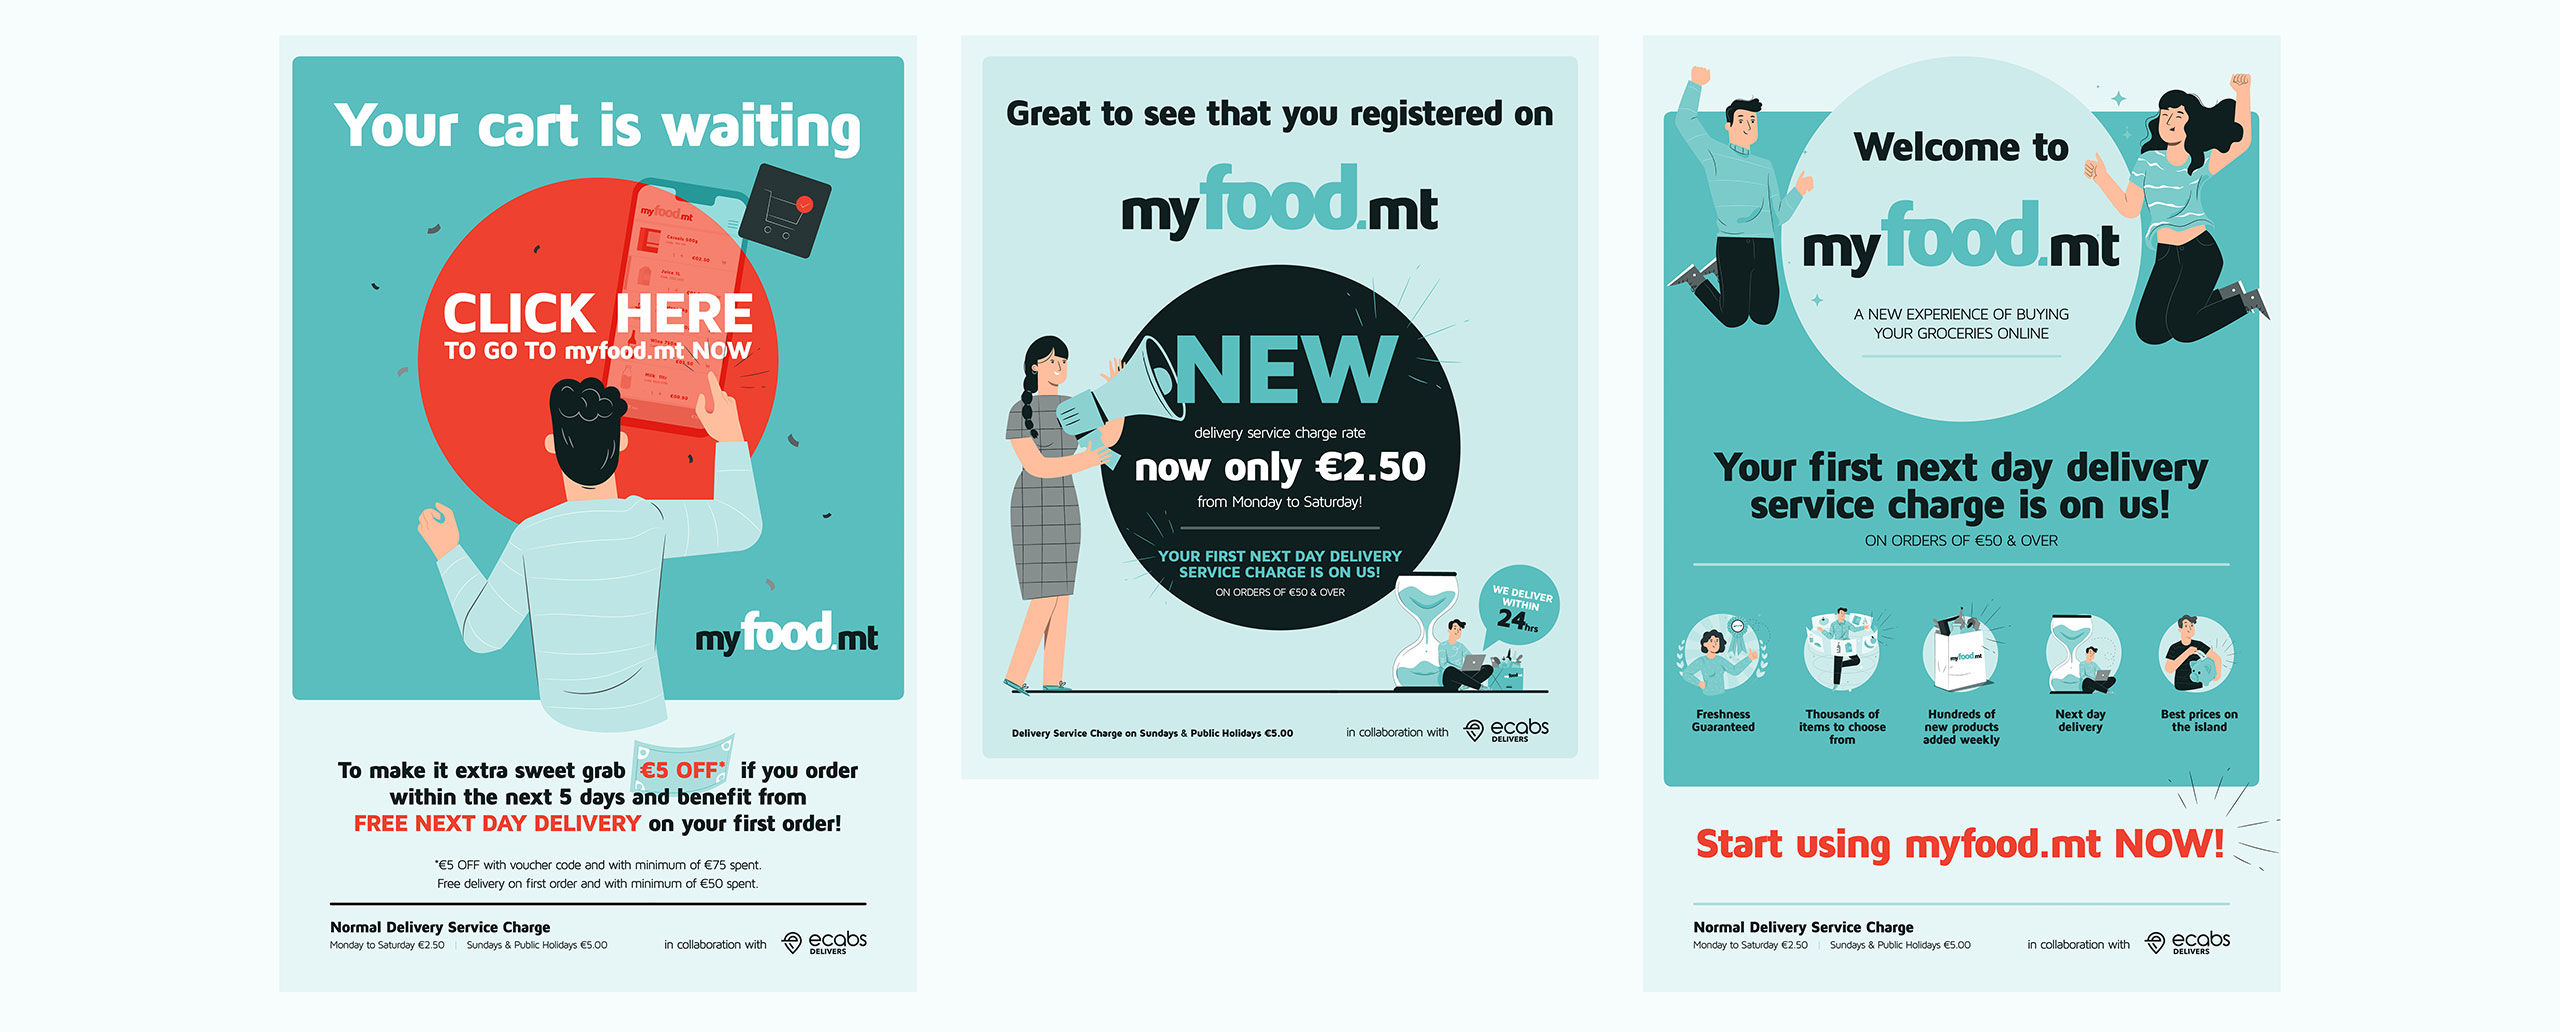 4000-0000-Studio-Behance-Myfood-24_02 case study